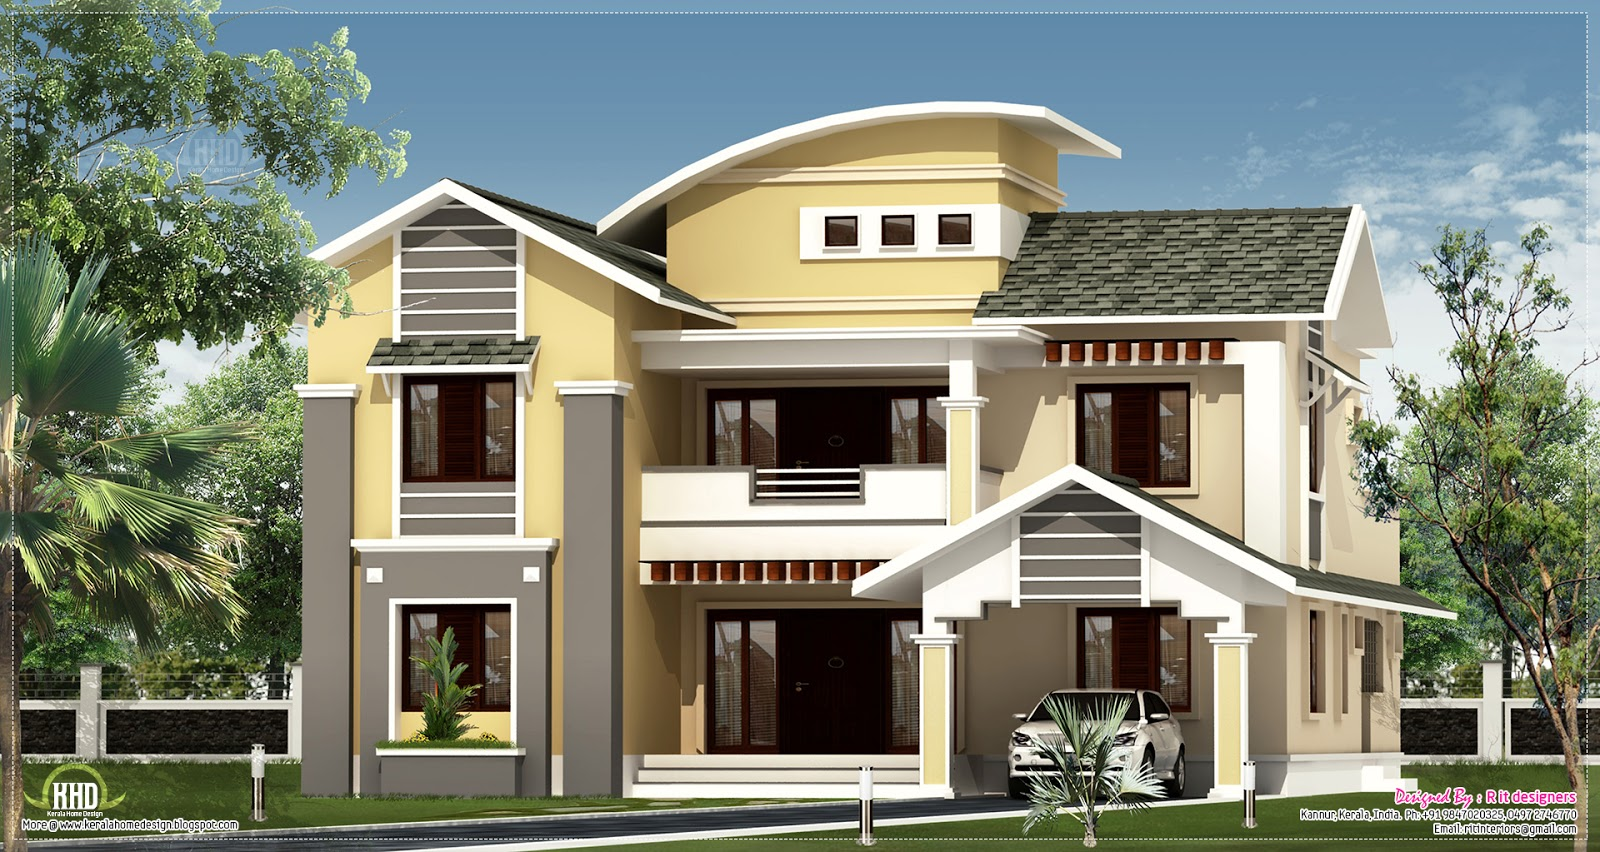 3000 home design from kannur kerala kerala home for Home architecture design kerala